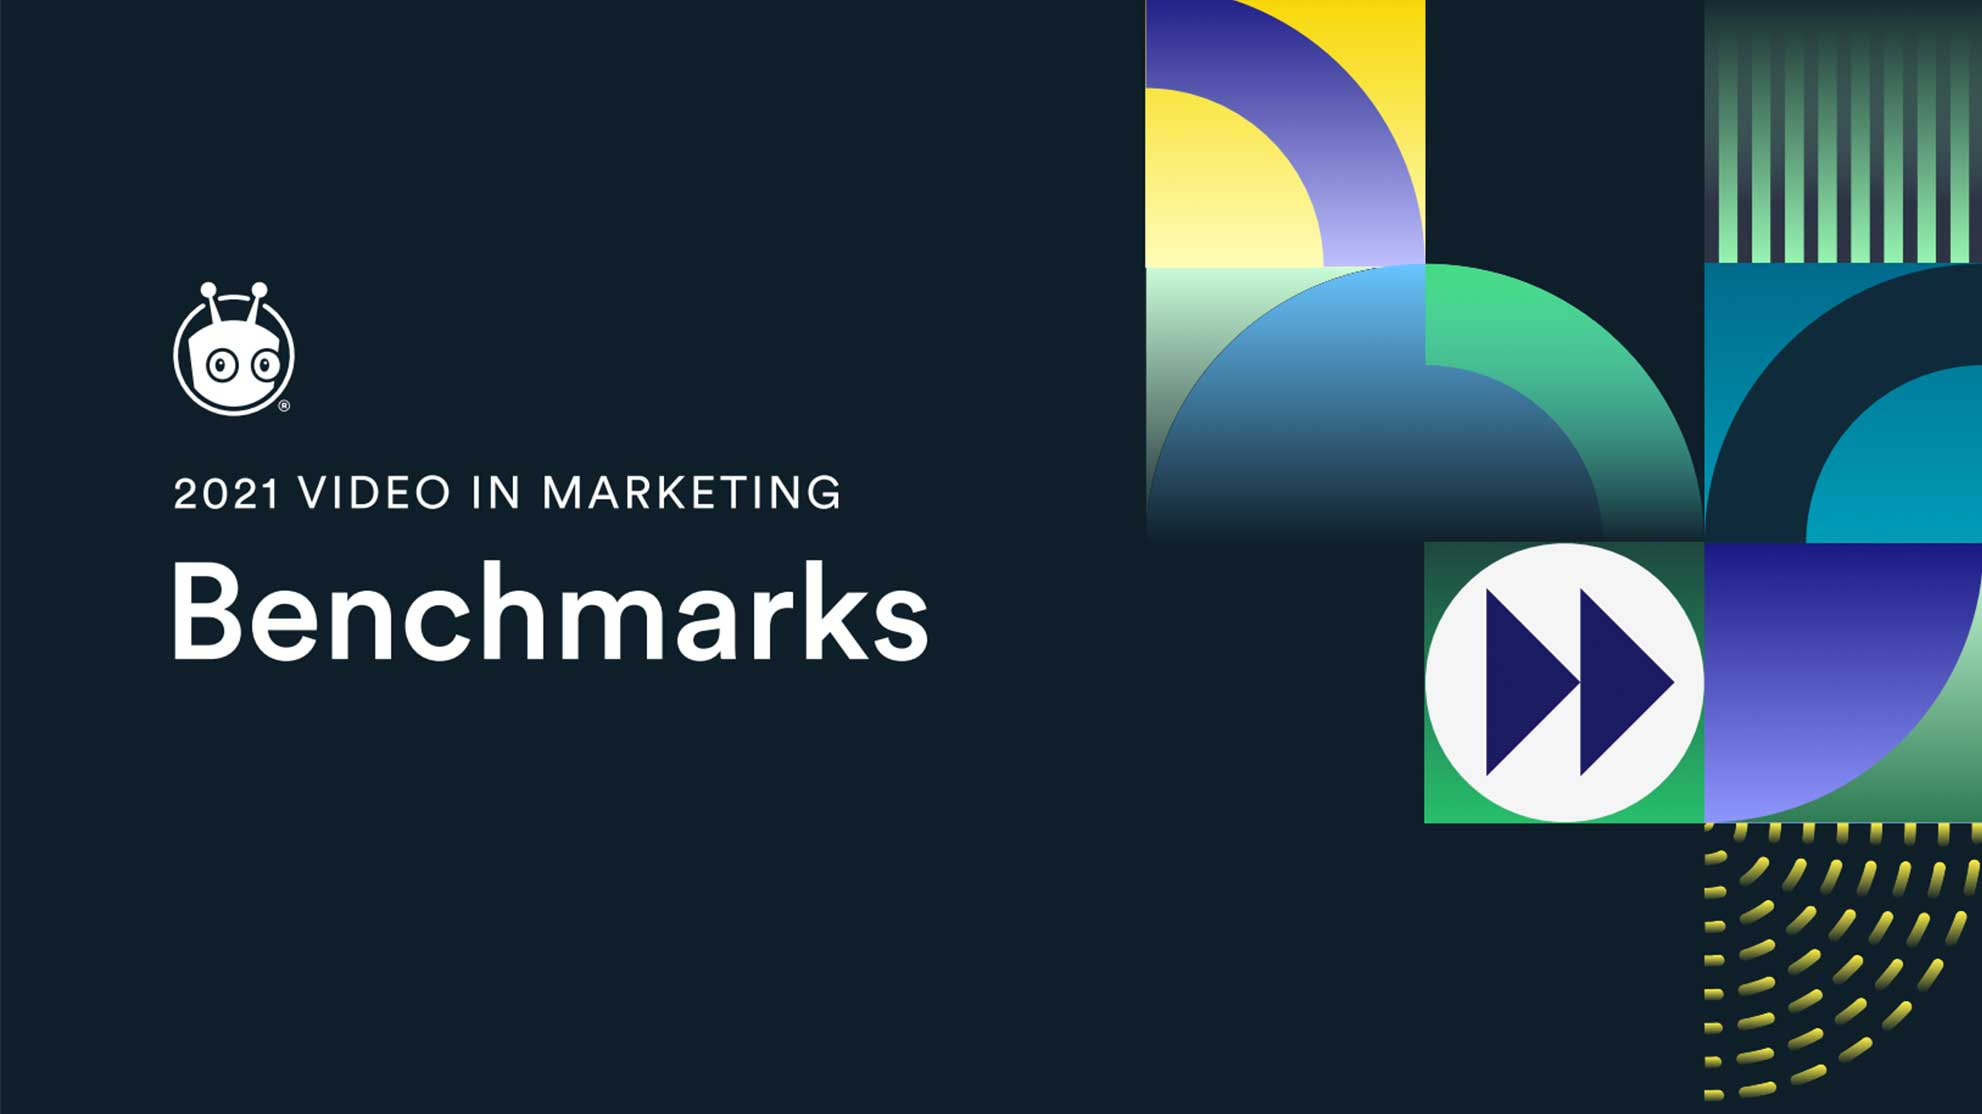 Video Marketing Benchmarks for 2021 [Infographic]